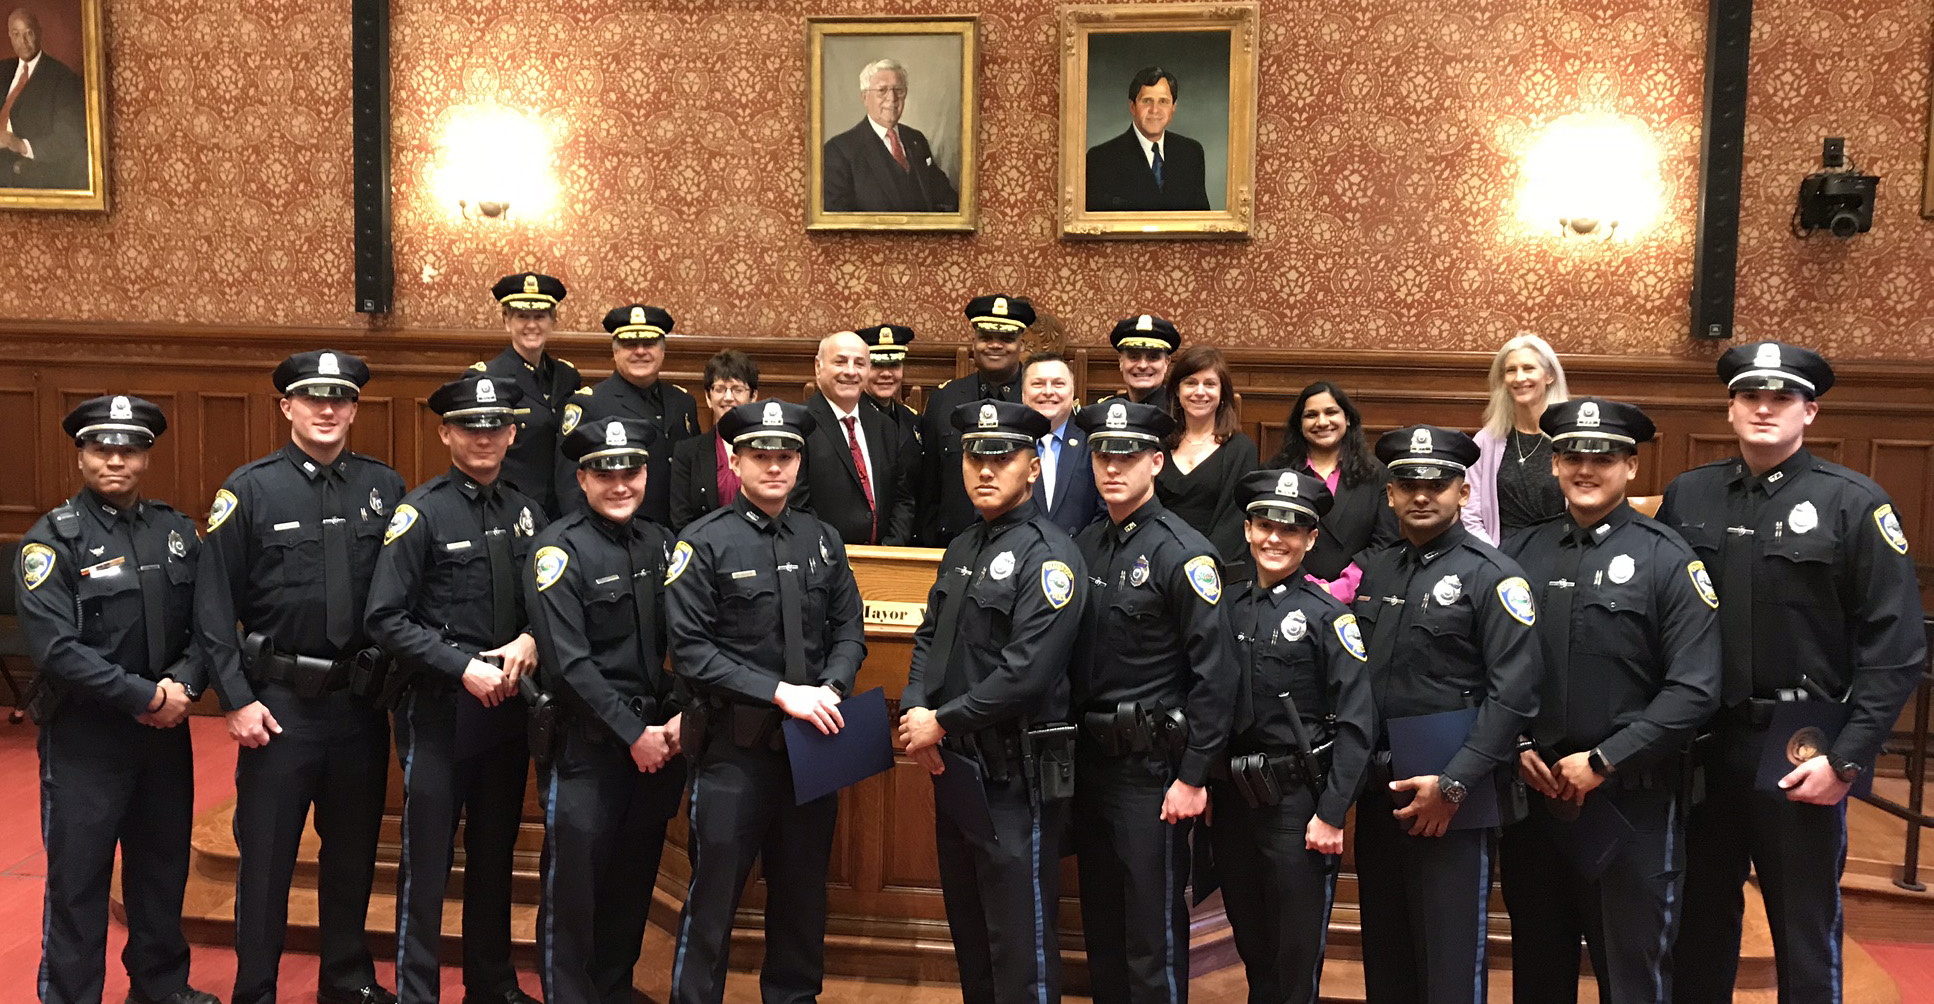 Cambridge Police Department Welcomes 10 New Officers - City